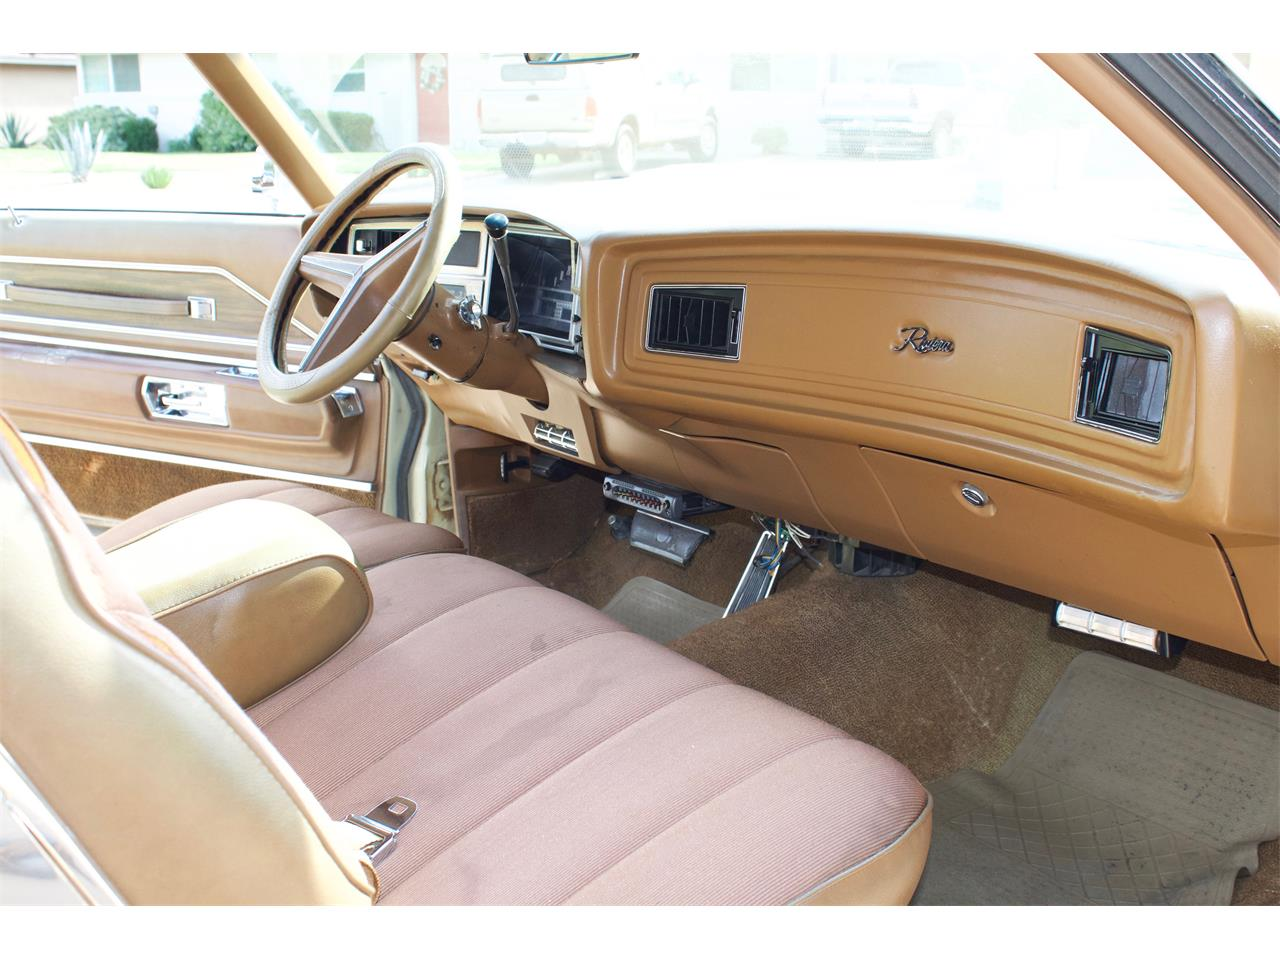 Large Picture of '72 Riviera located in Phoenix Arizona - $17,000.00 - OOZF